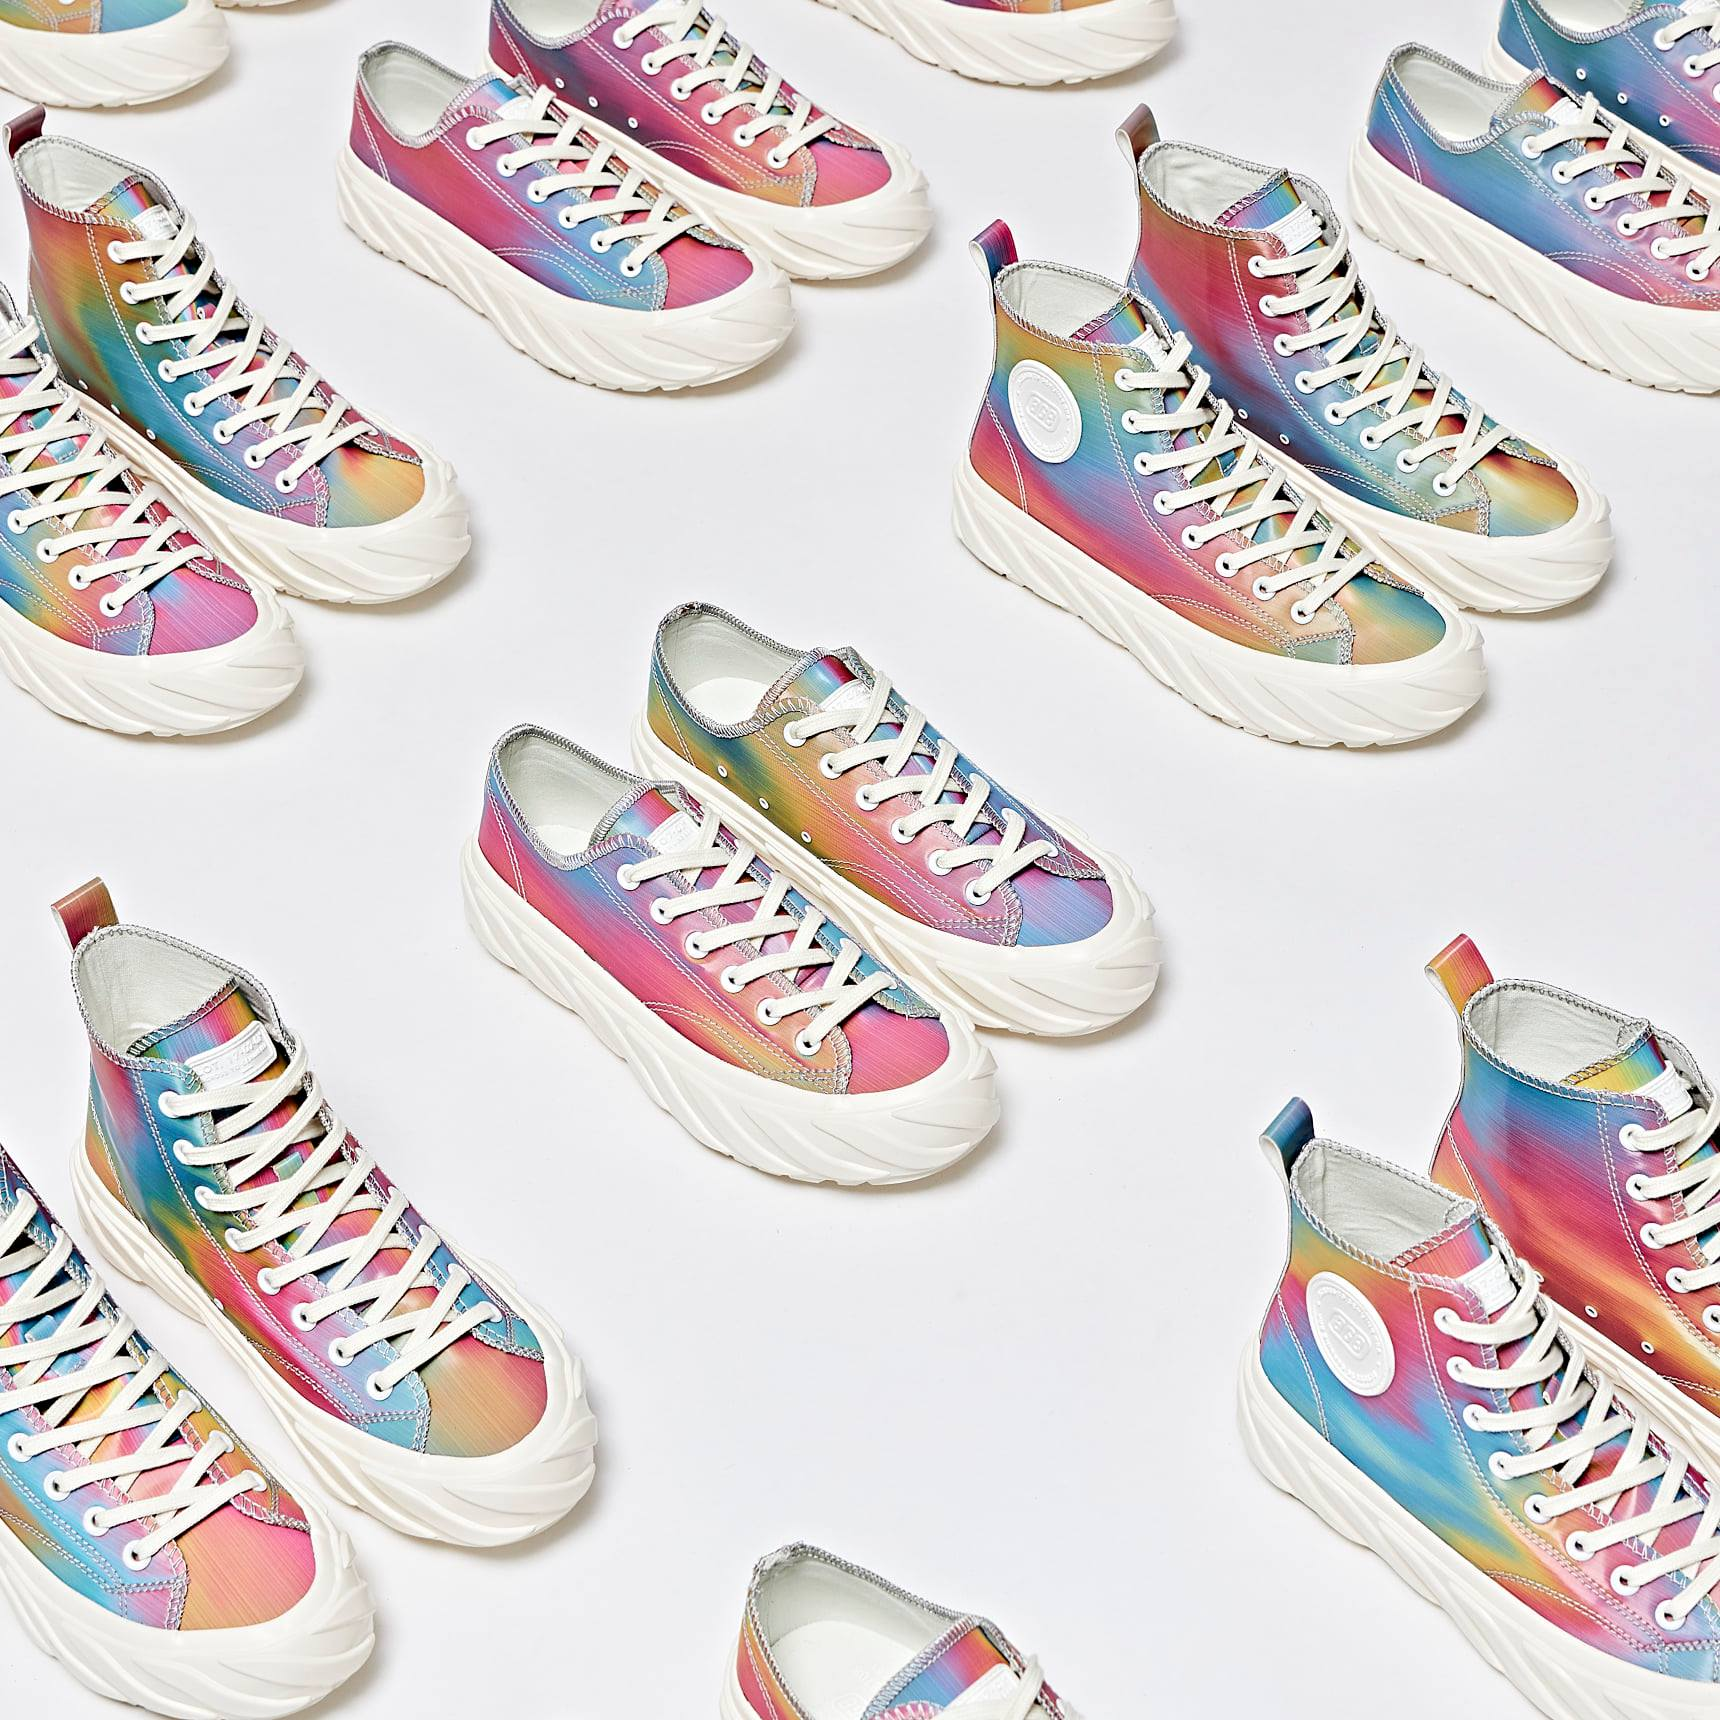 age official sneakers prism 2021 collection